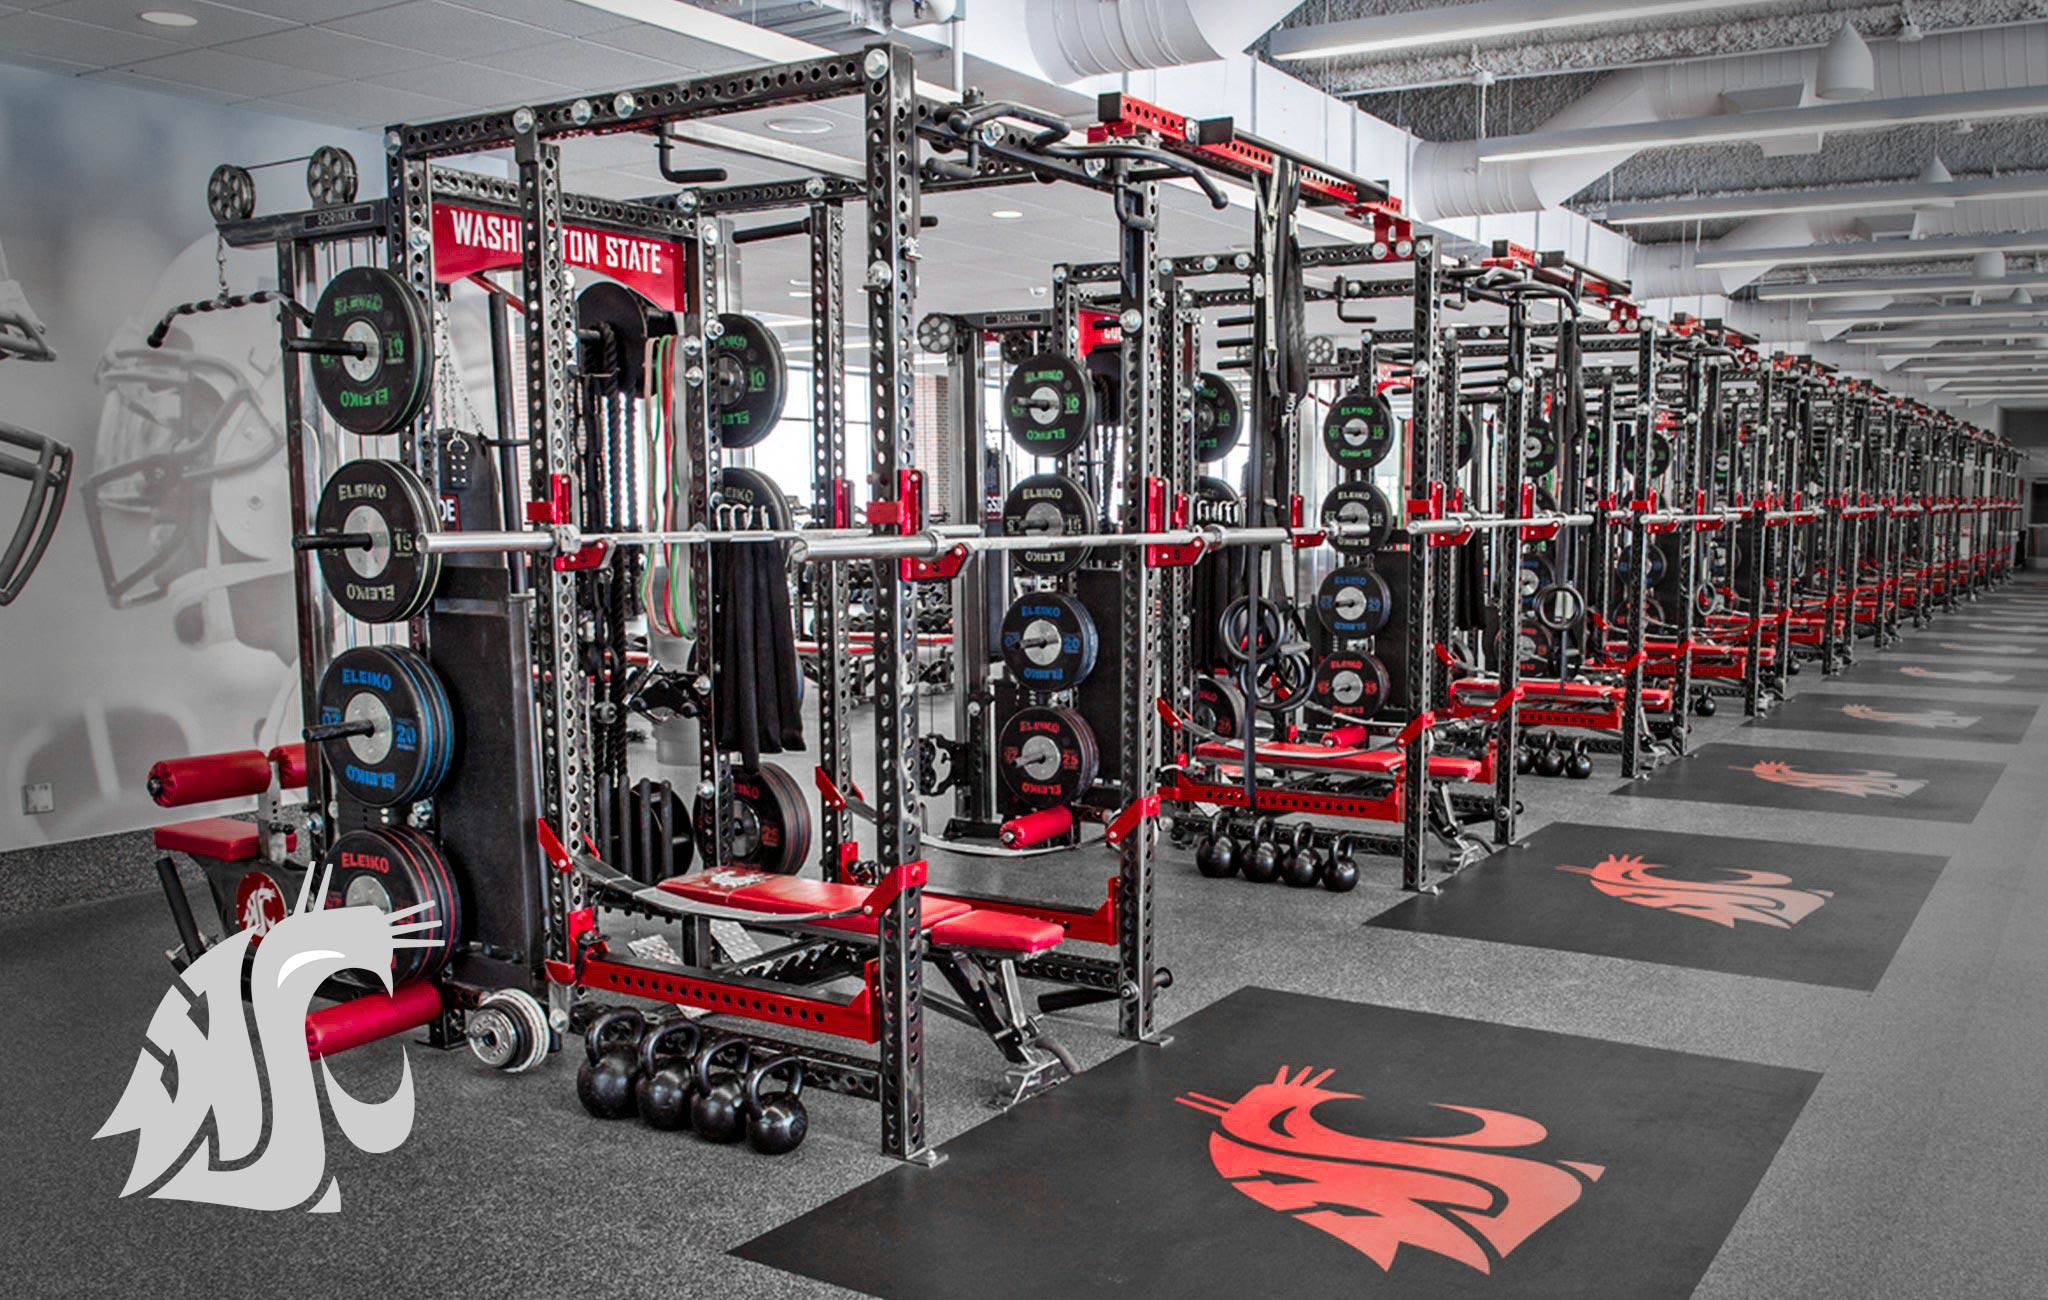 Washington State University Sorinex strength and conditioning facility